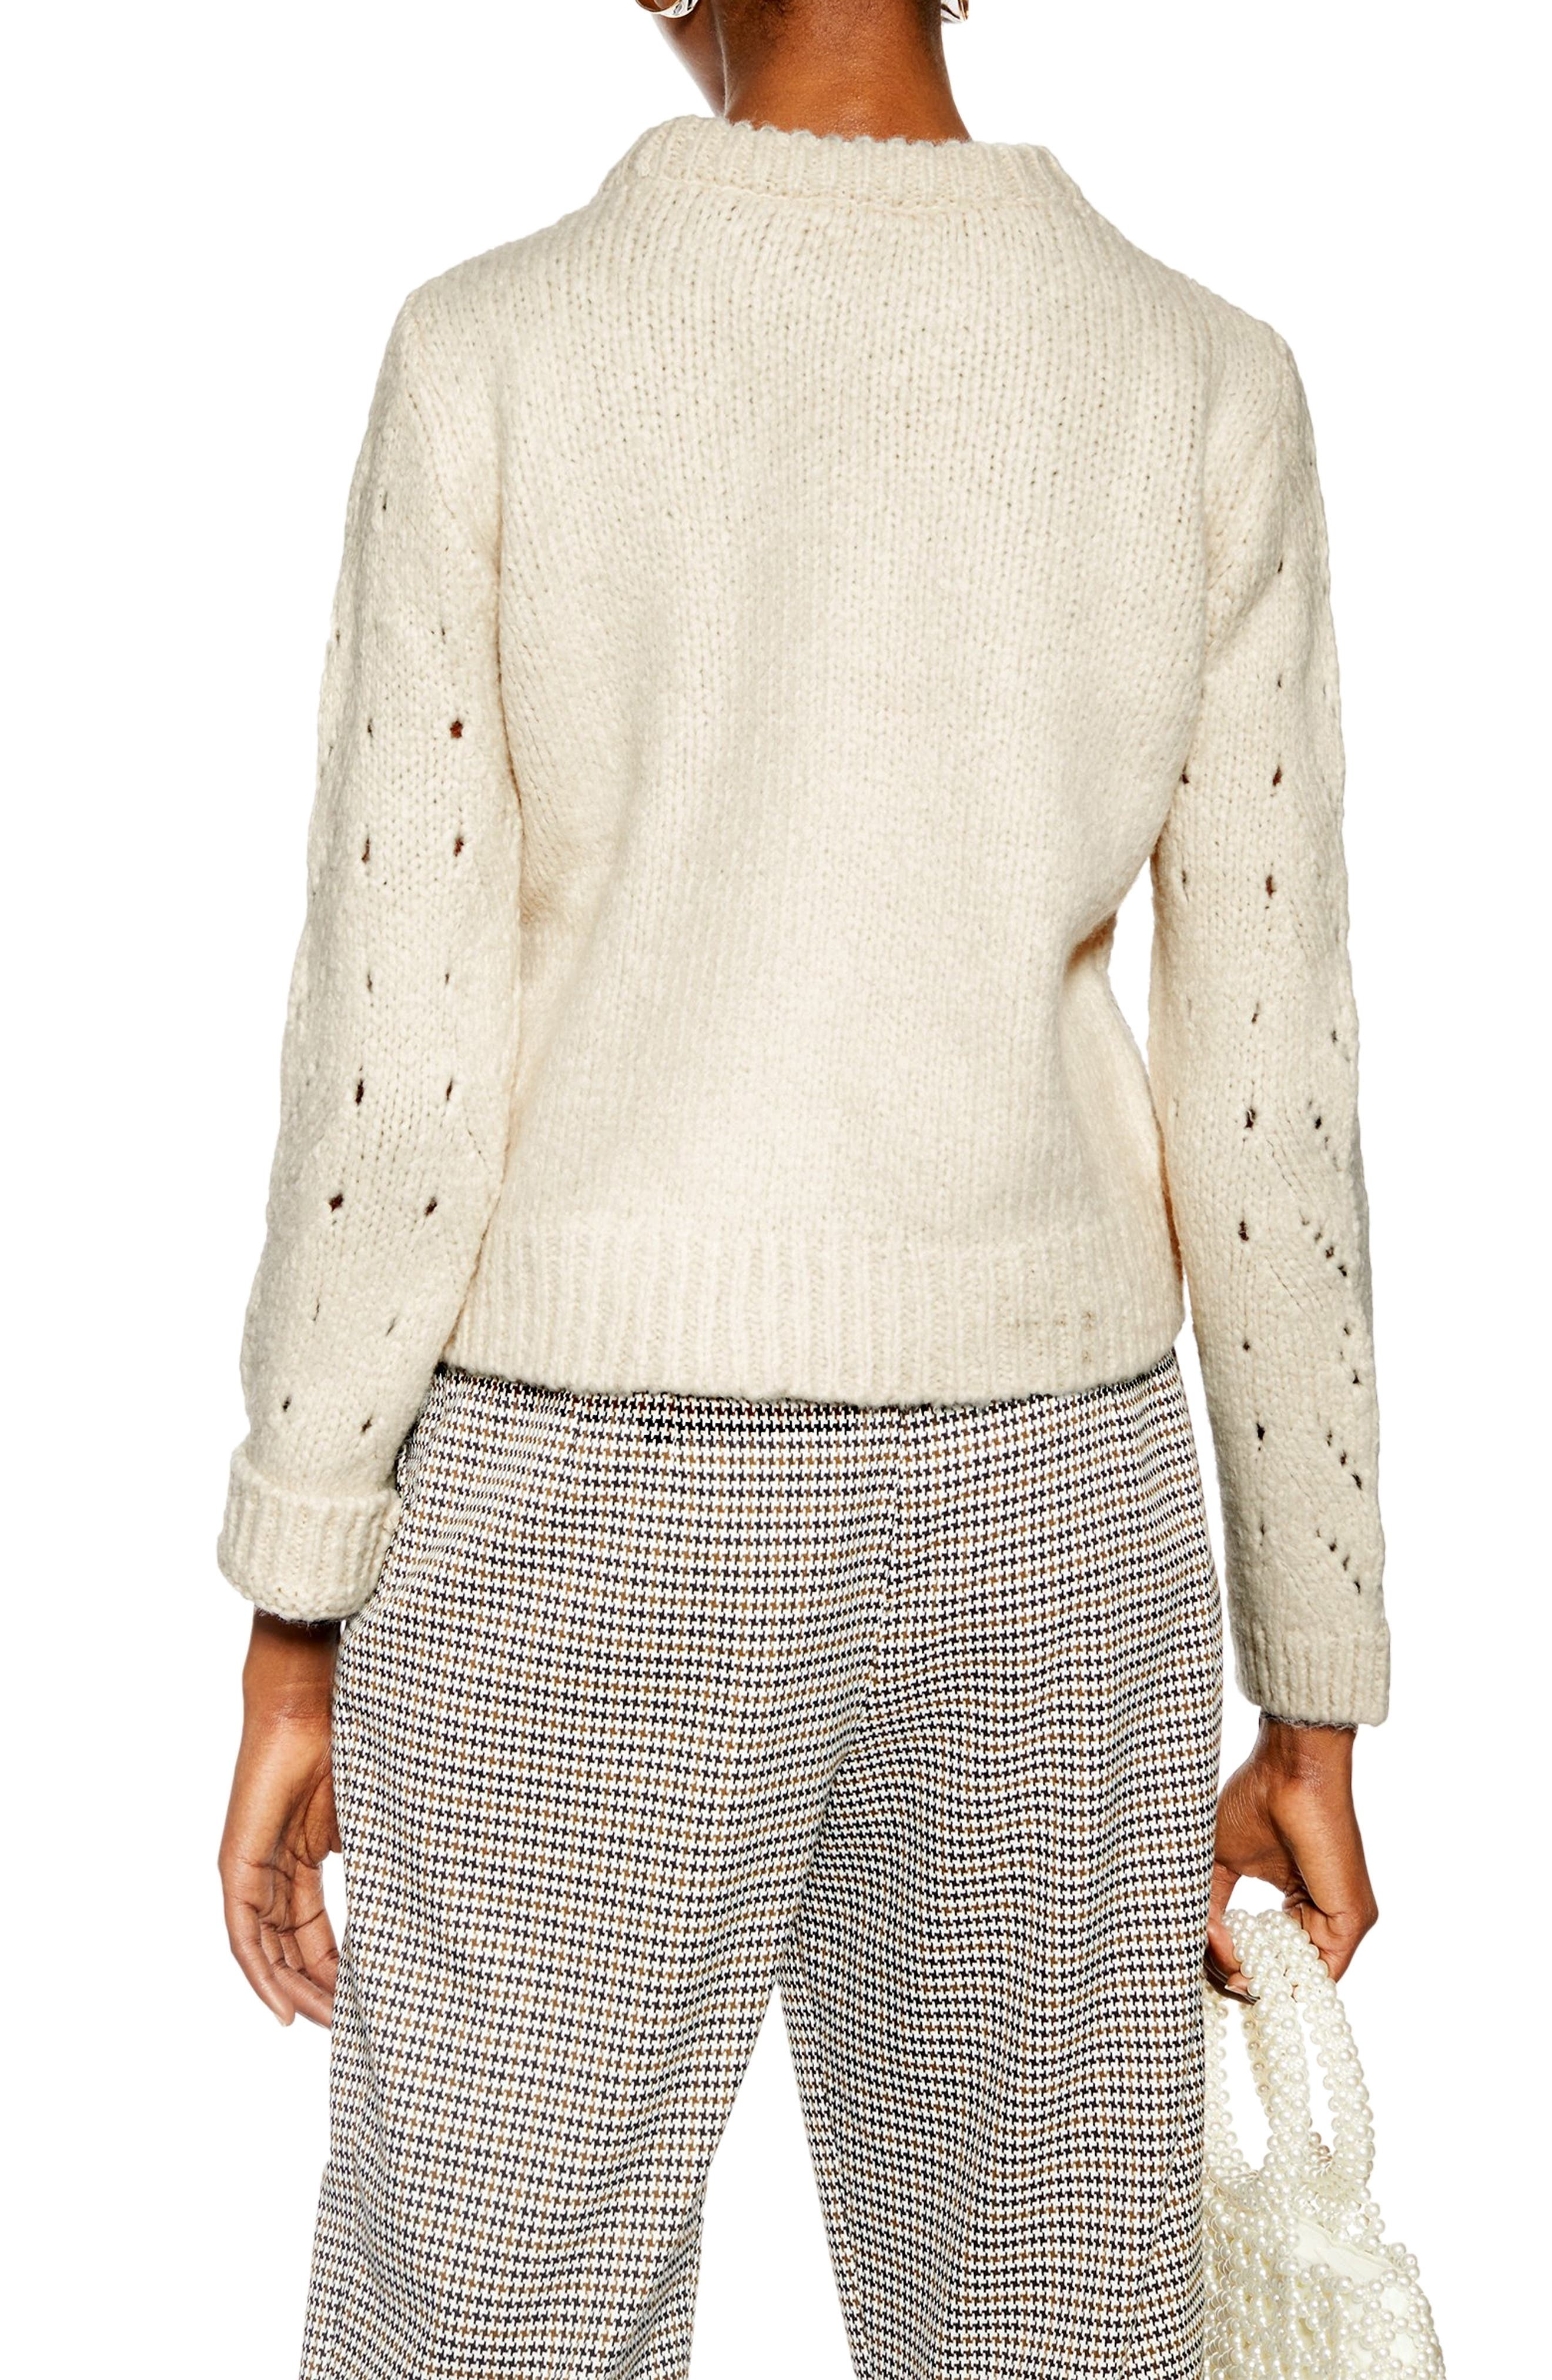 Pointelle Lace Sweater,                             Alternate thumbnail 2, color,                             IVORY